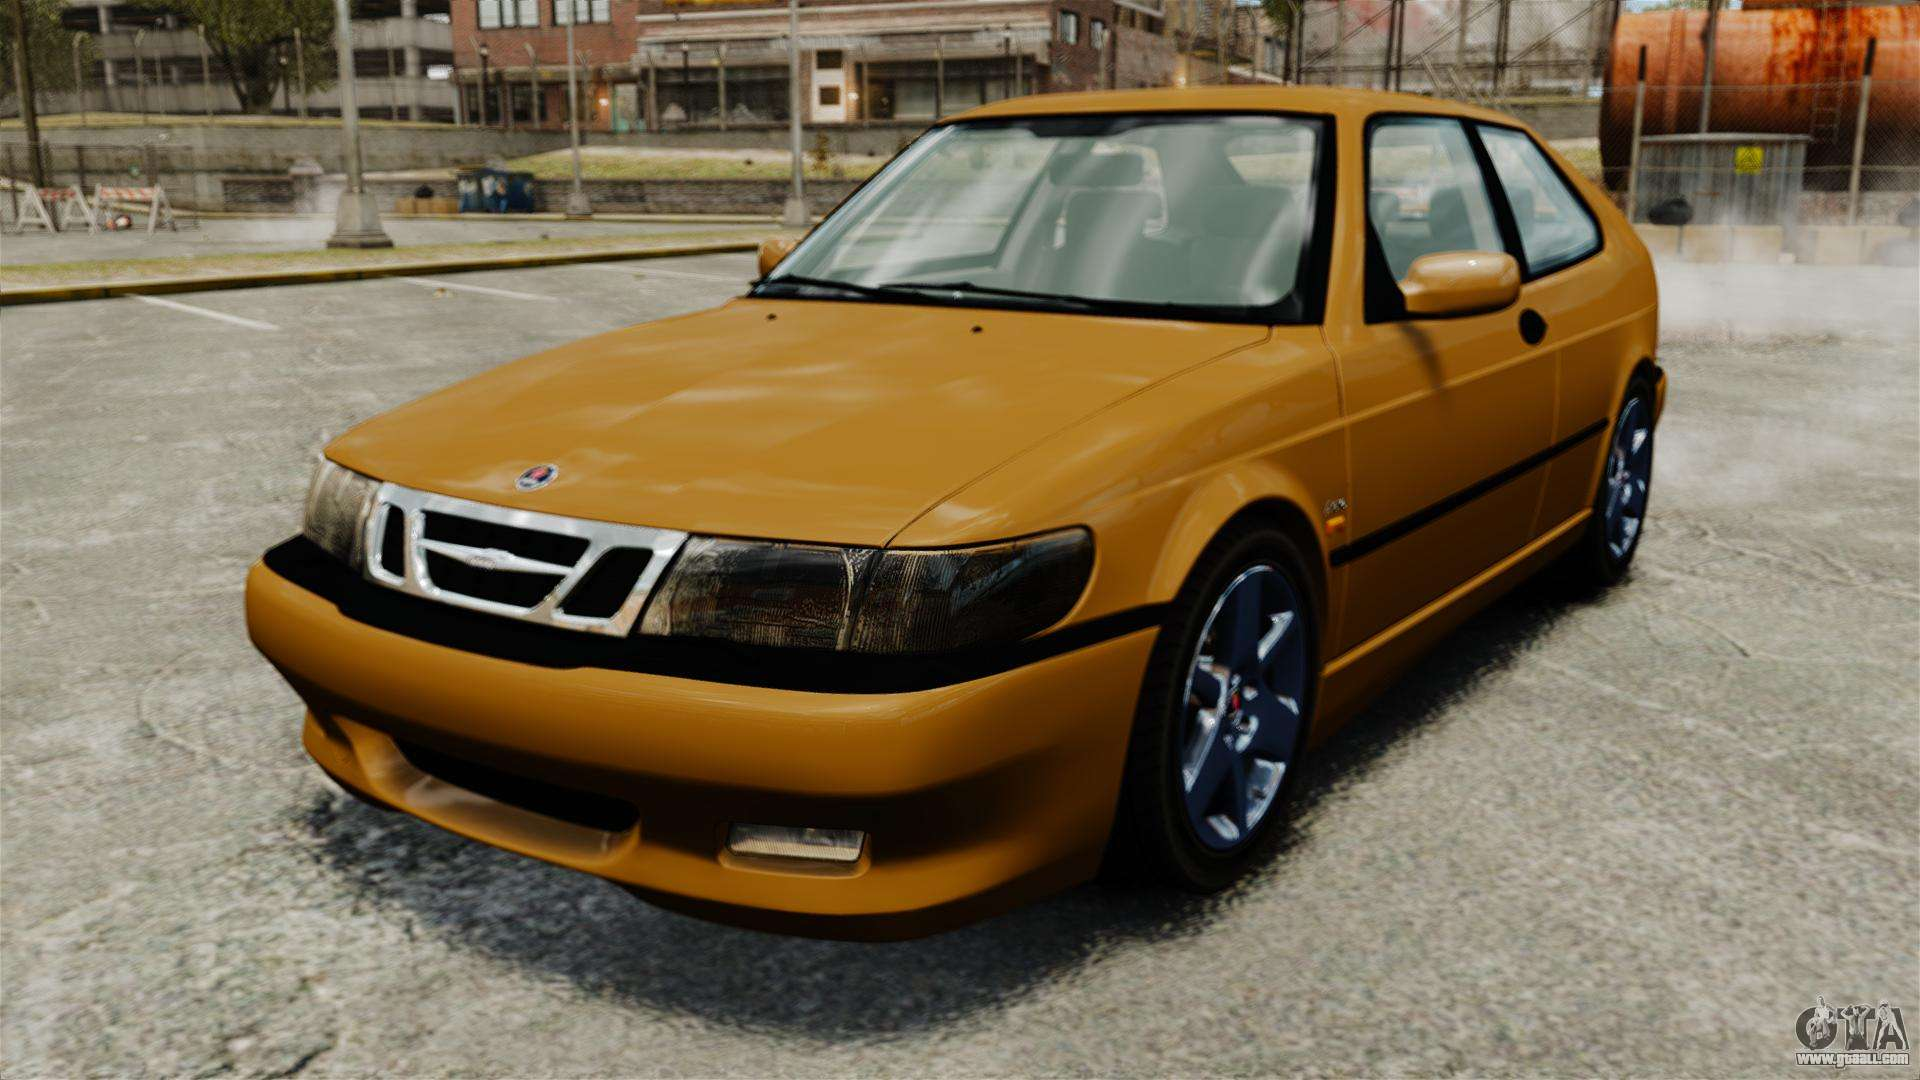 VEHICLE] Saab 9-3 Aero Coupe | GTA5-Mods com Forums